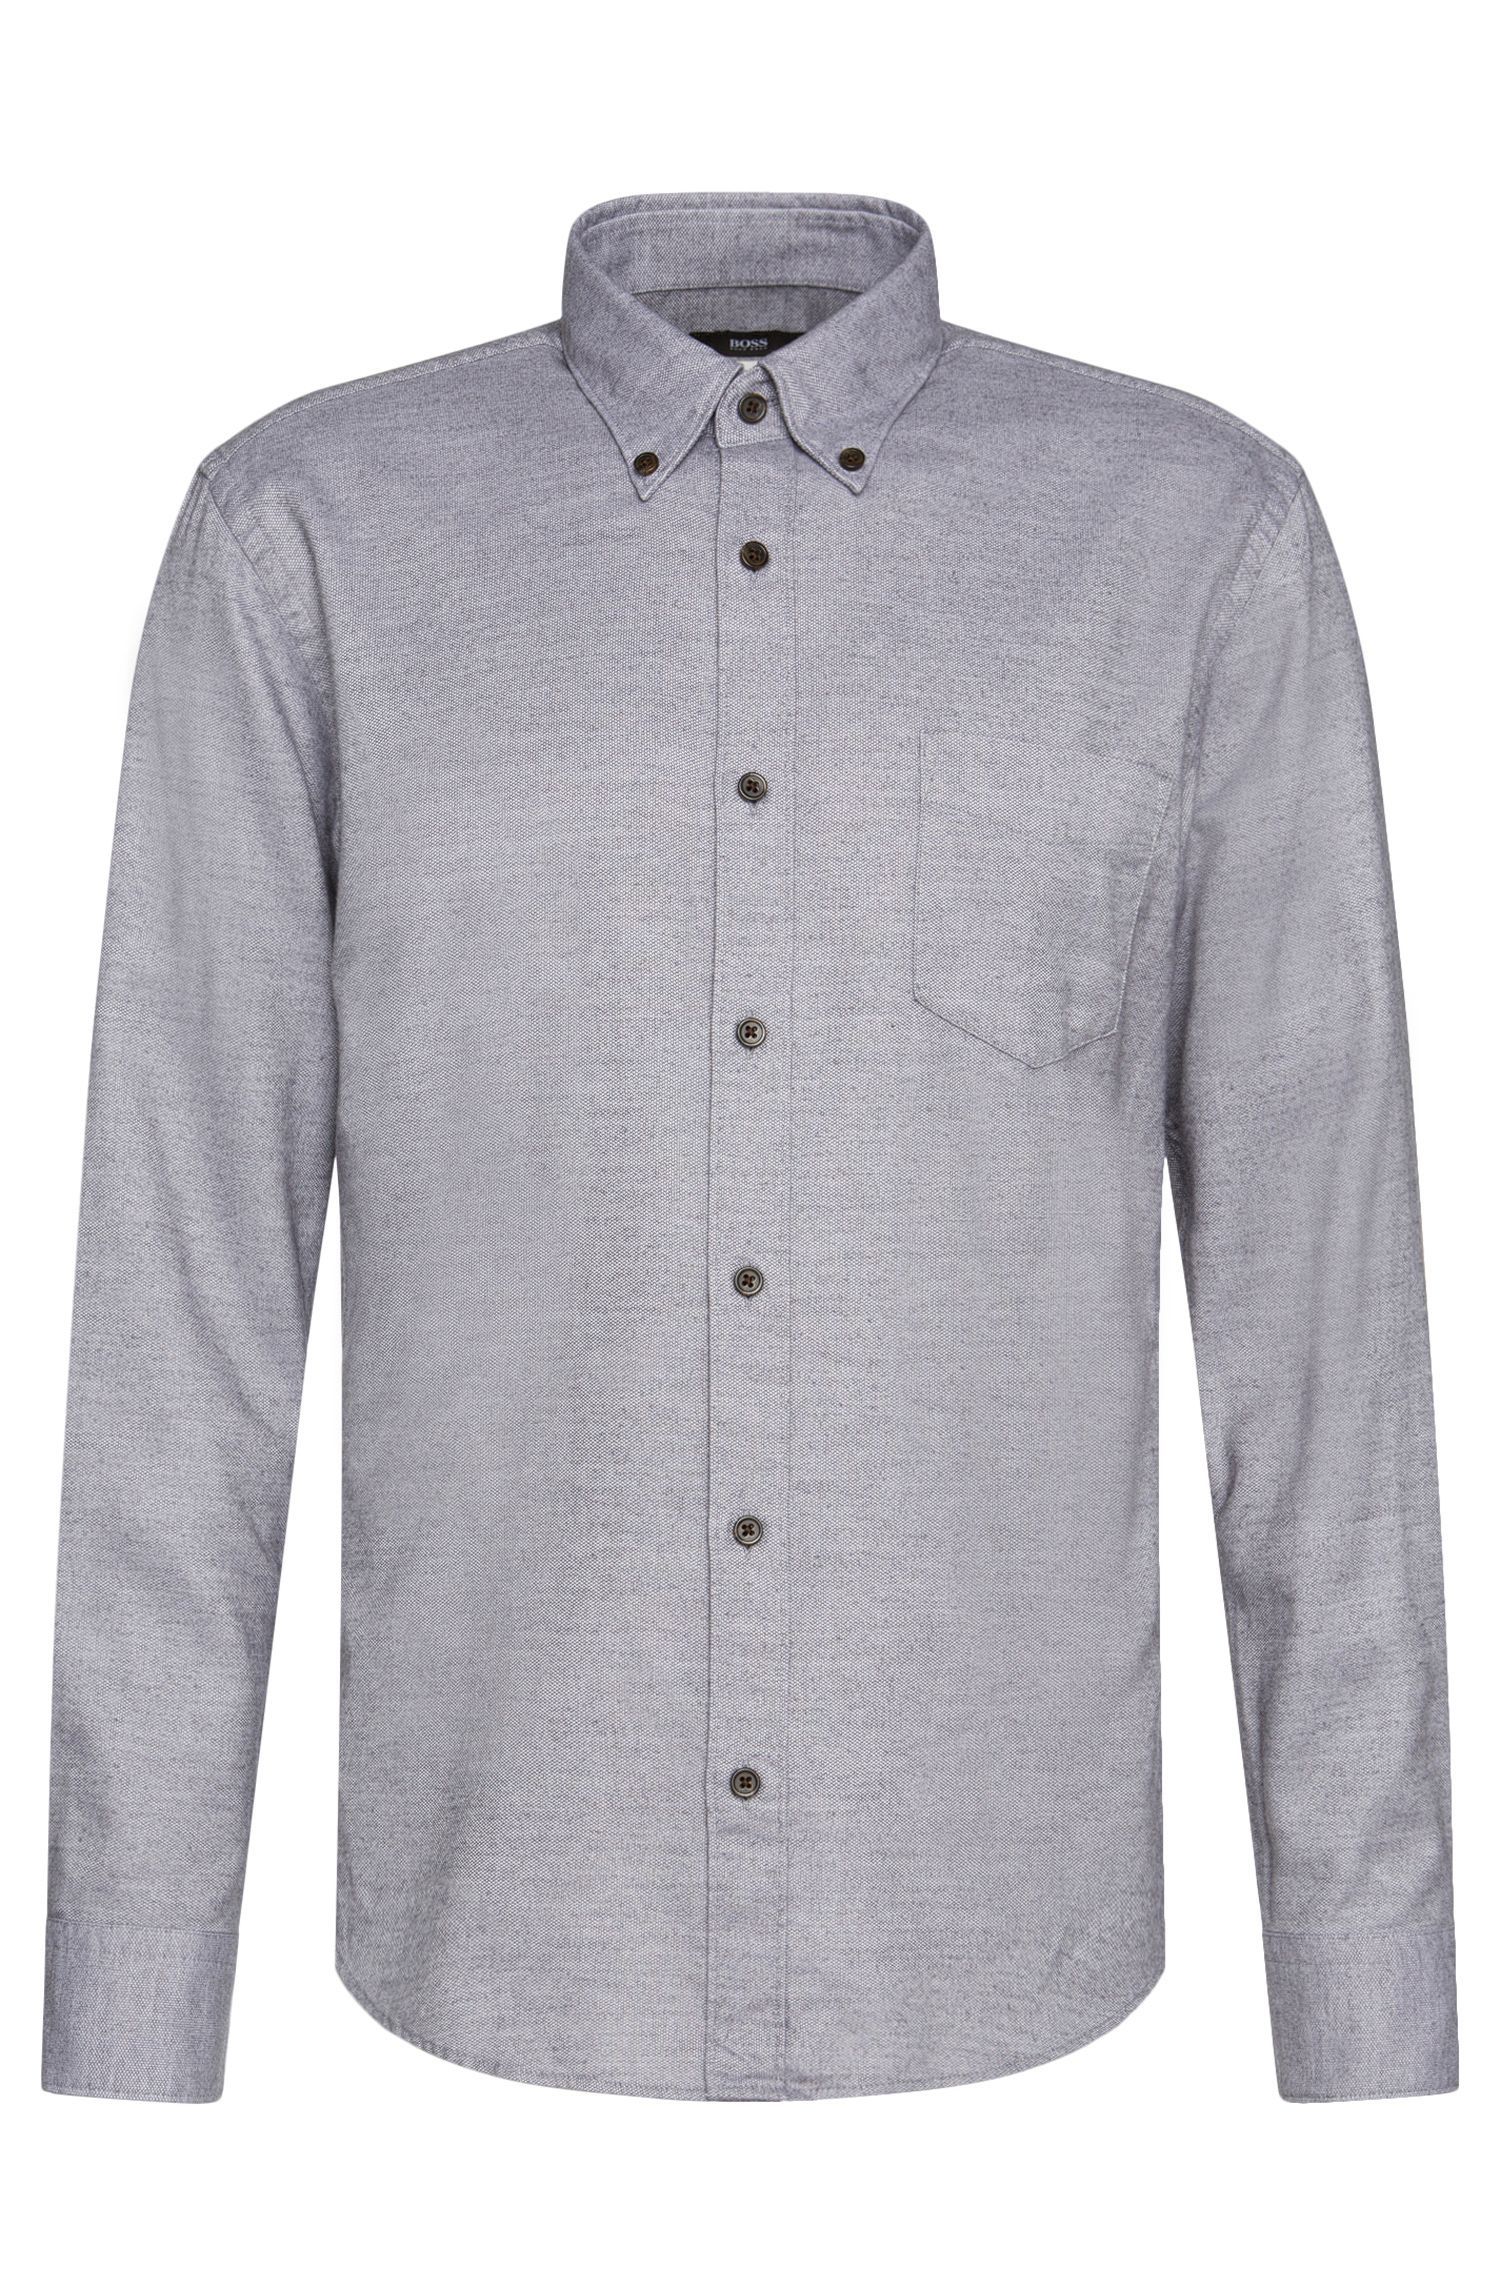 'Rubens P' | Slim Fit, Lyocell Cotton Button Down Shirt